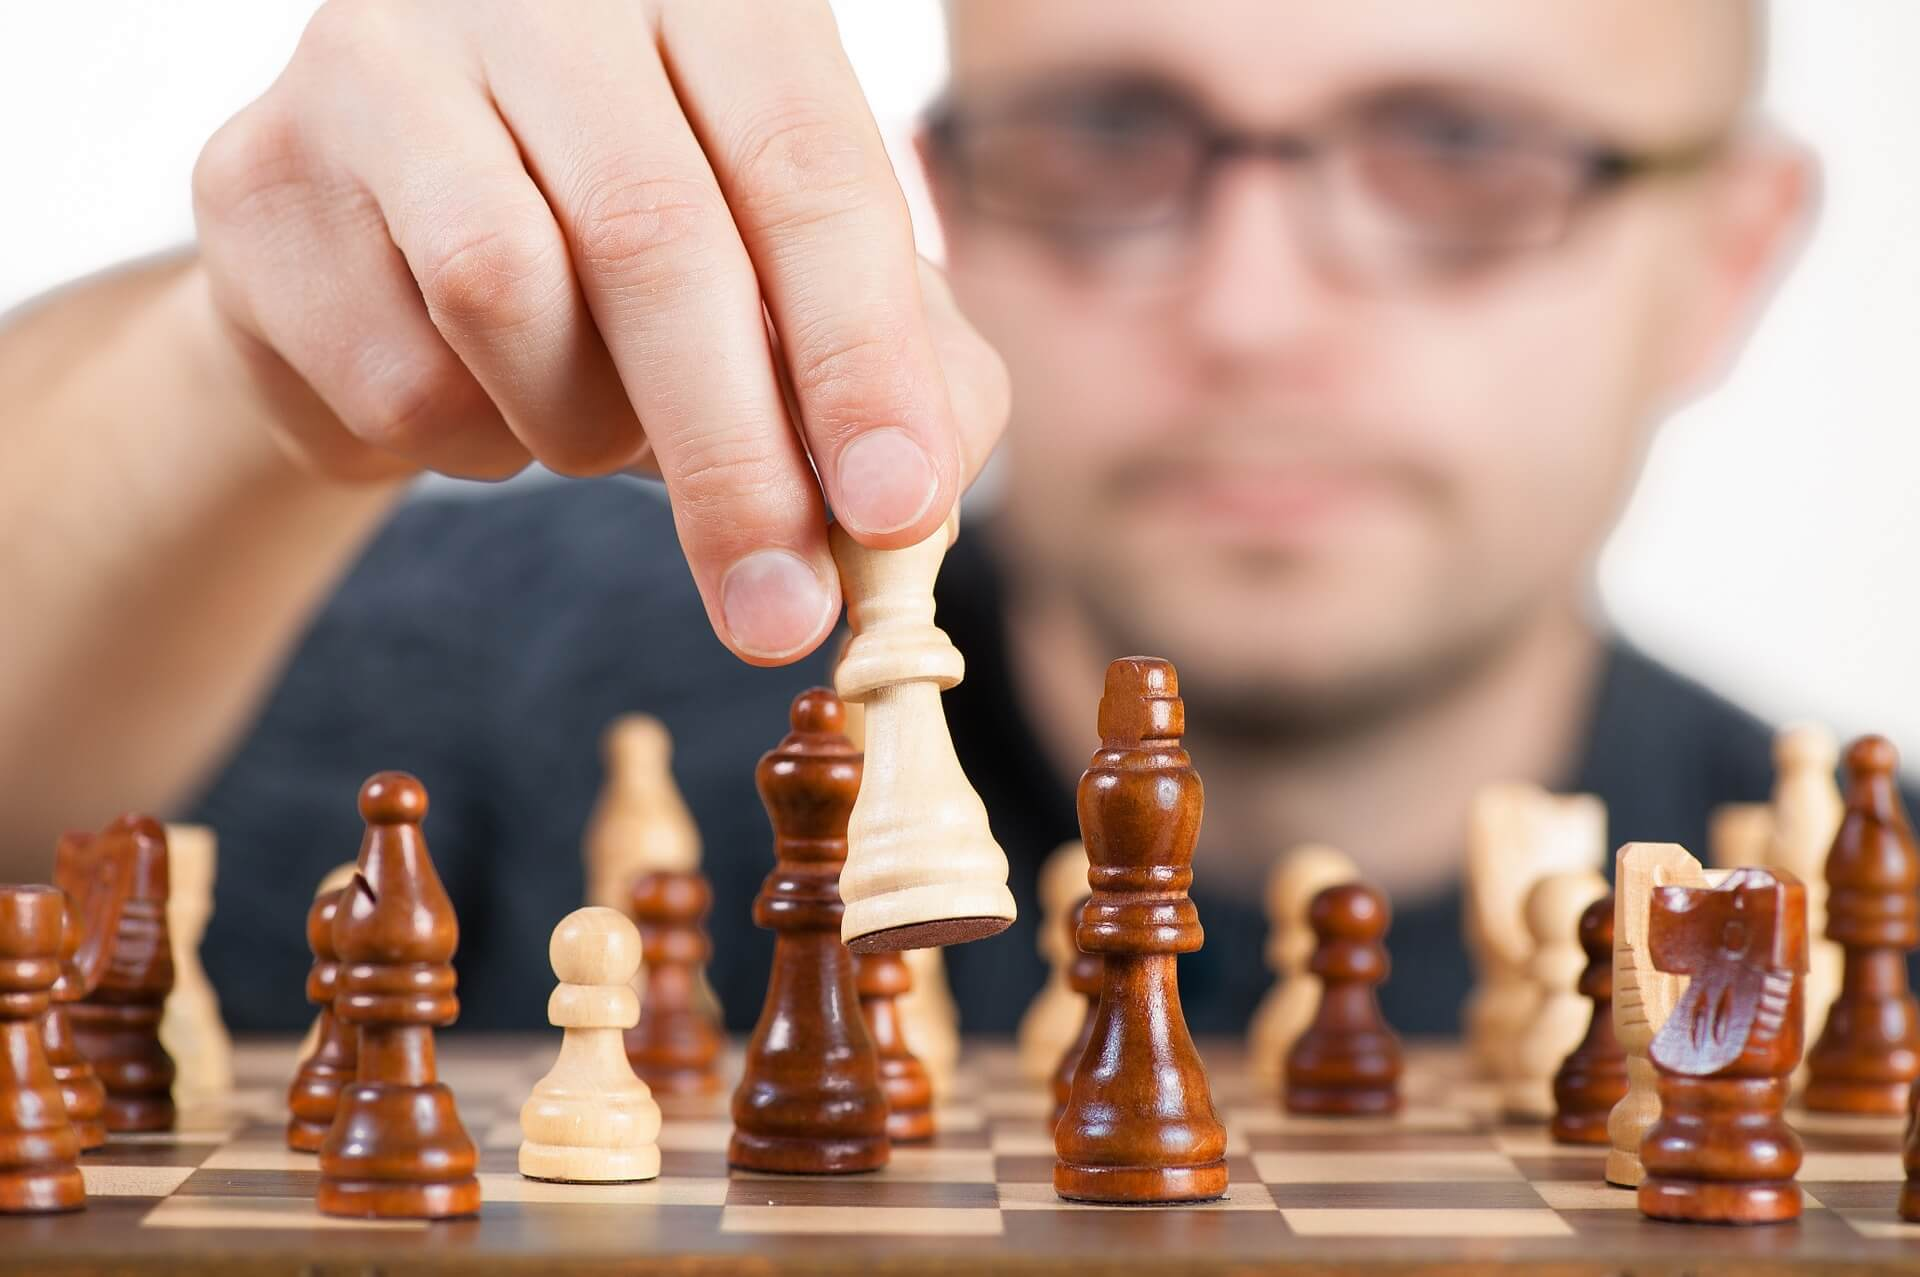 mental health benefits of chess